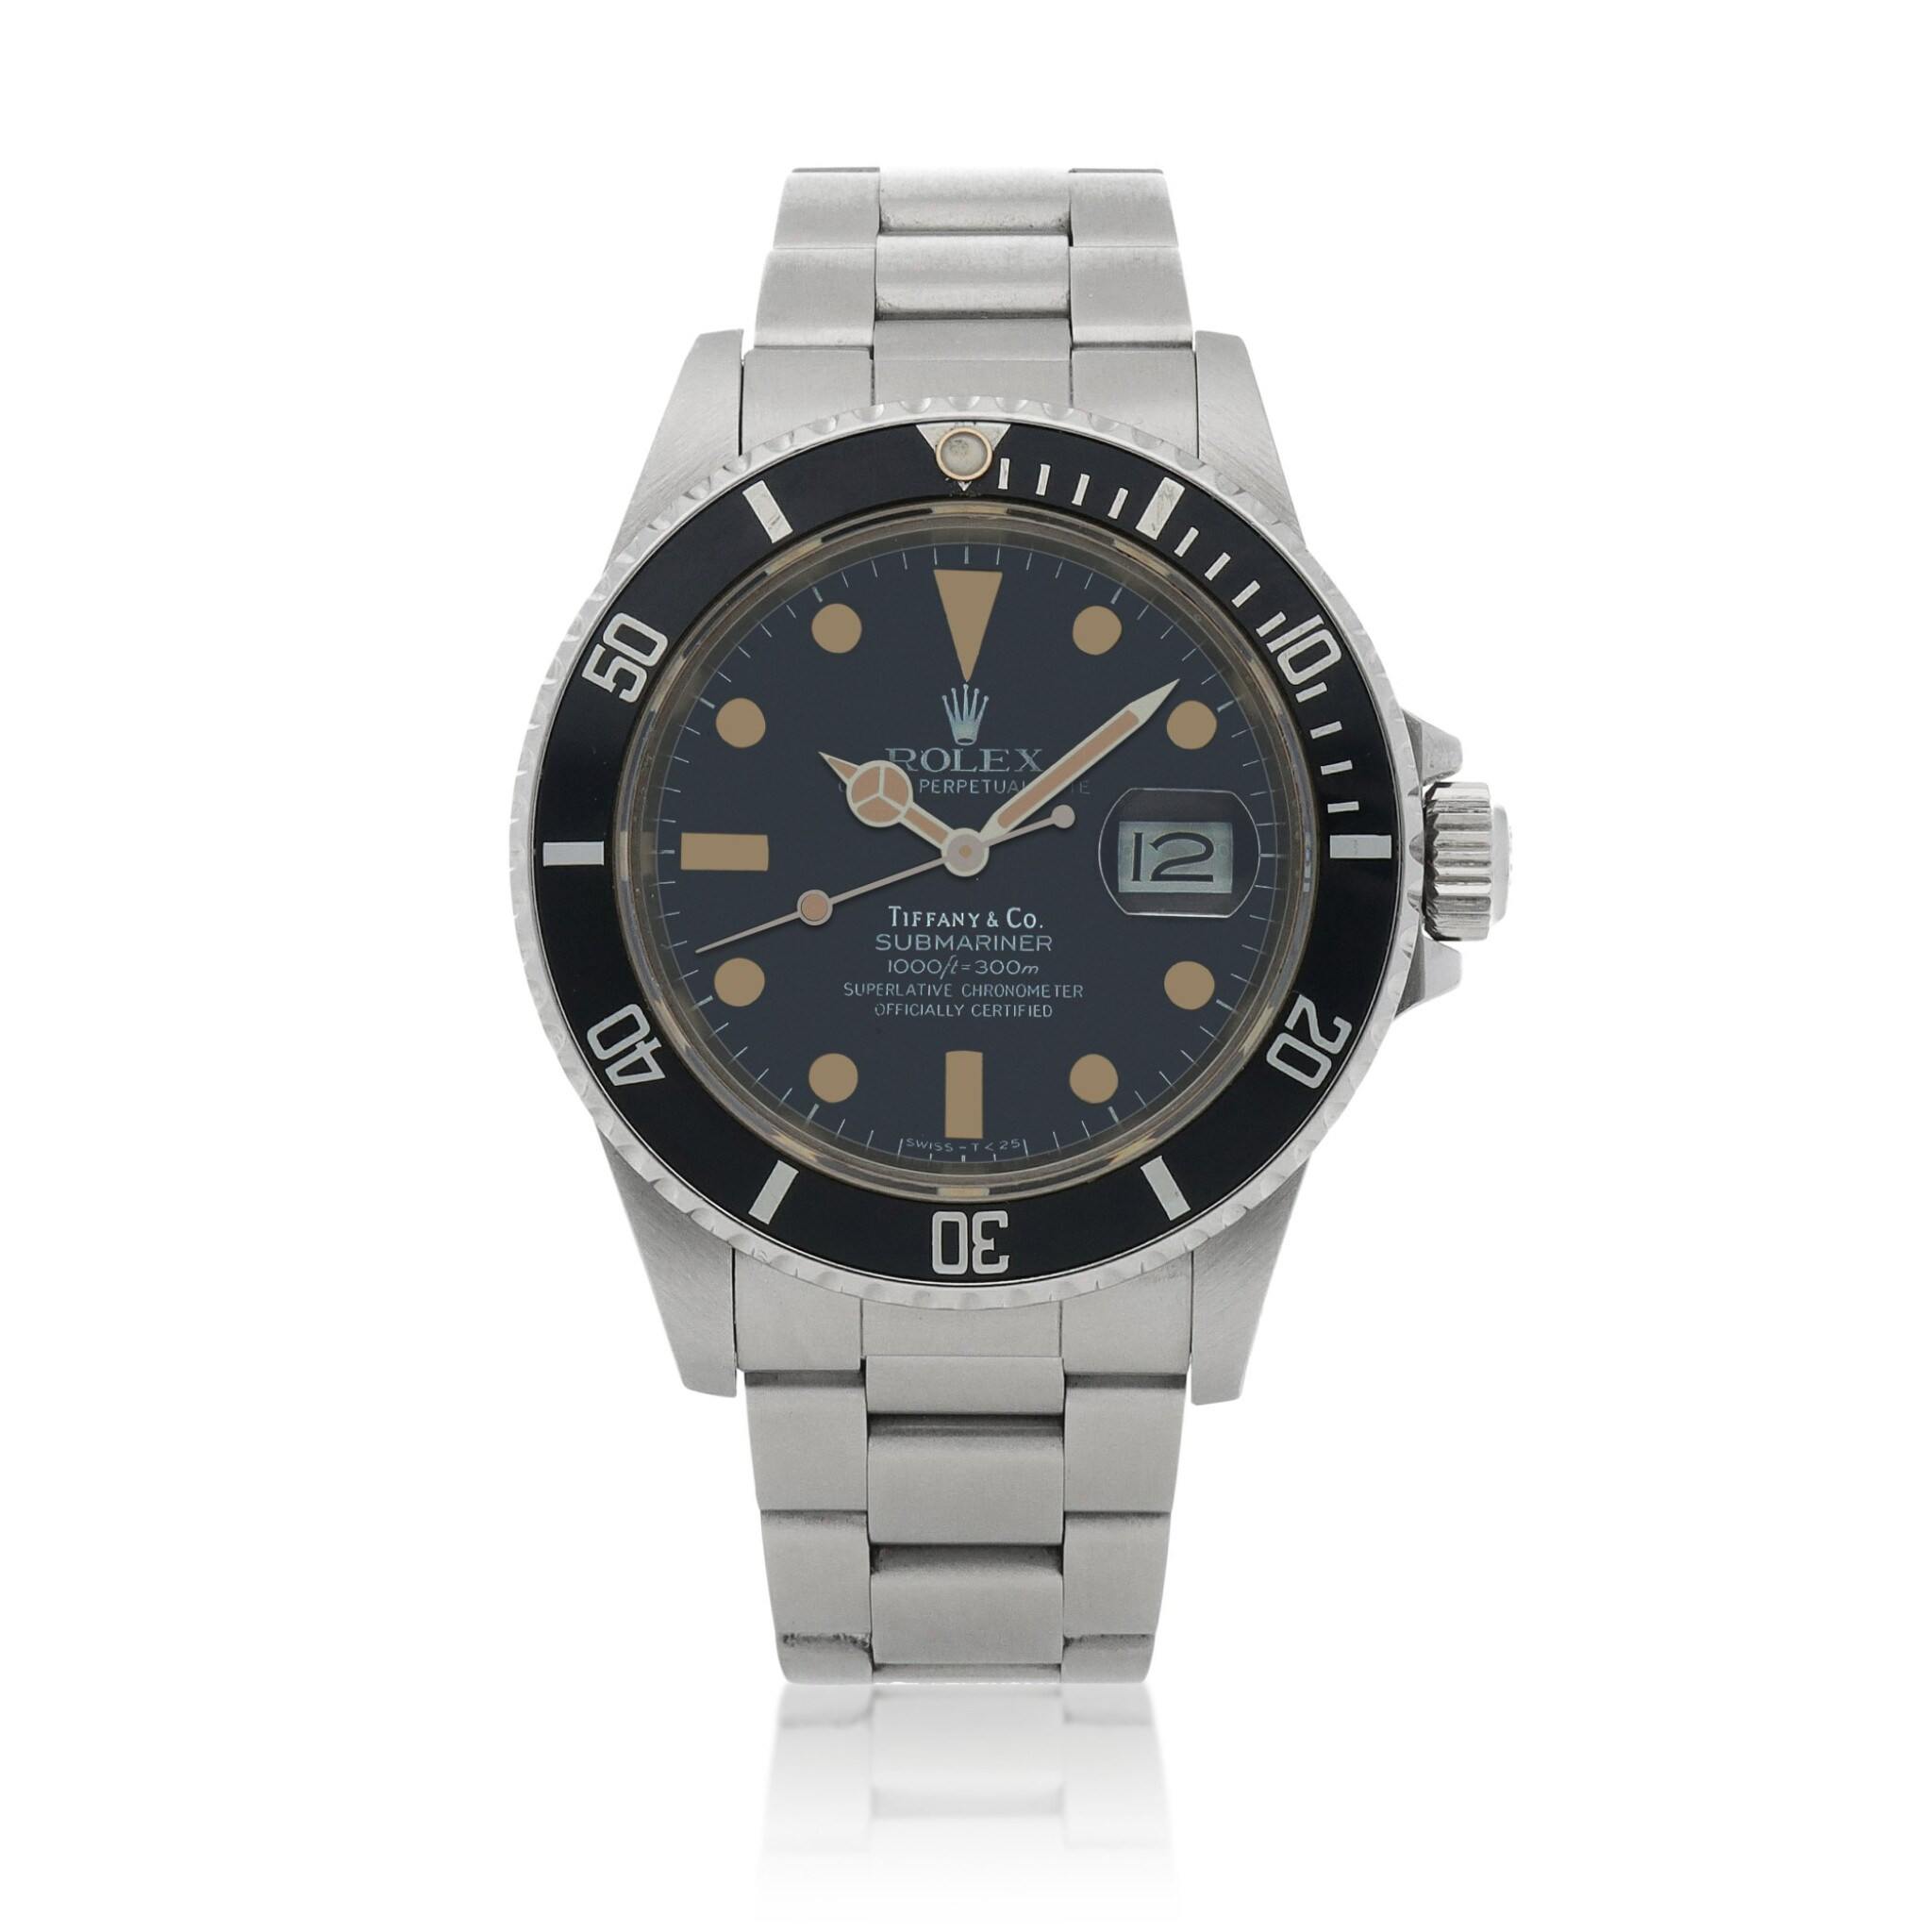 View full screen - View 1 of Lot 518. Retailed by Tiffany & Co.: Submariner, Ref. 16800 Stainless steel wristwatch with date and bracelet Circa 1985   勞力士 零售商為蒂芙尼:16800型號「Submariner」精鋼鍊帶腕錶備日期顯示,年份約1985.